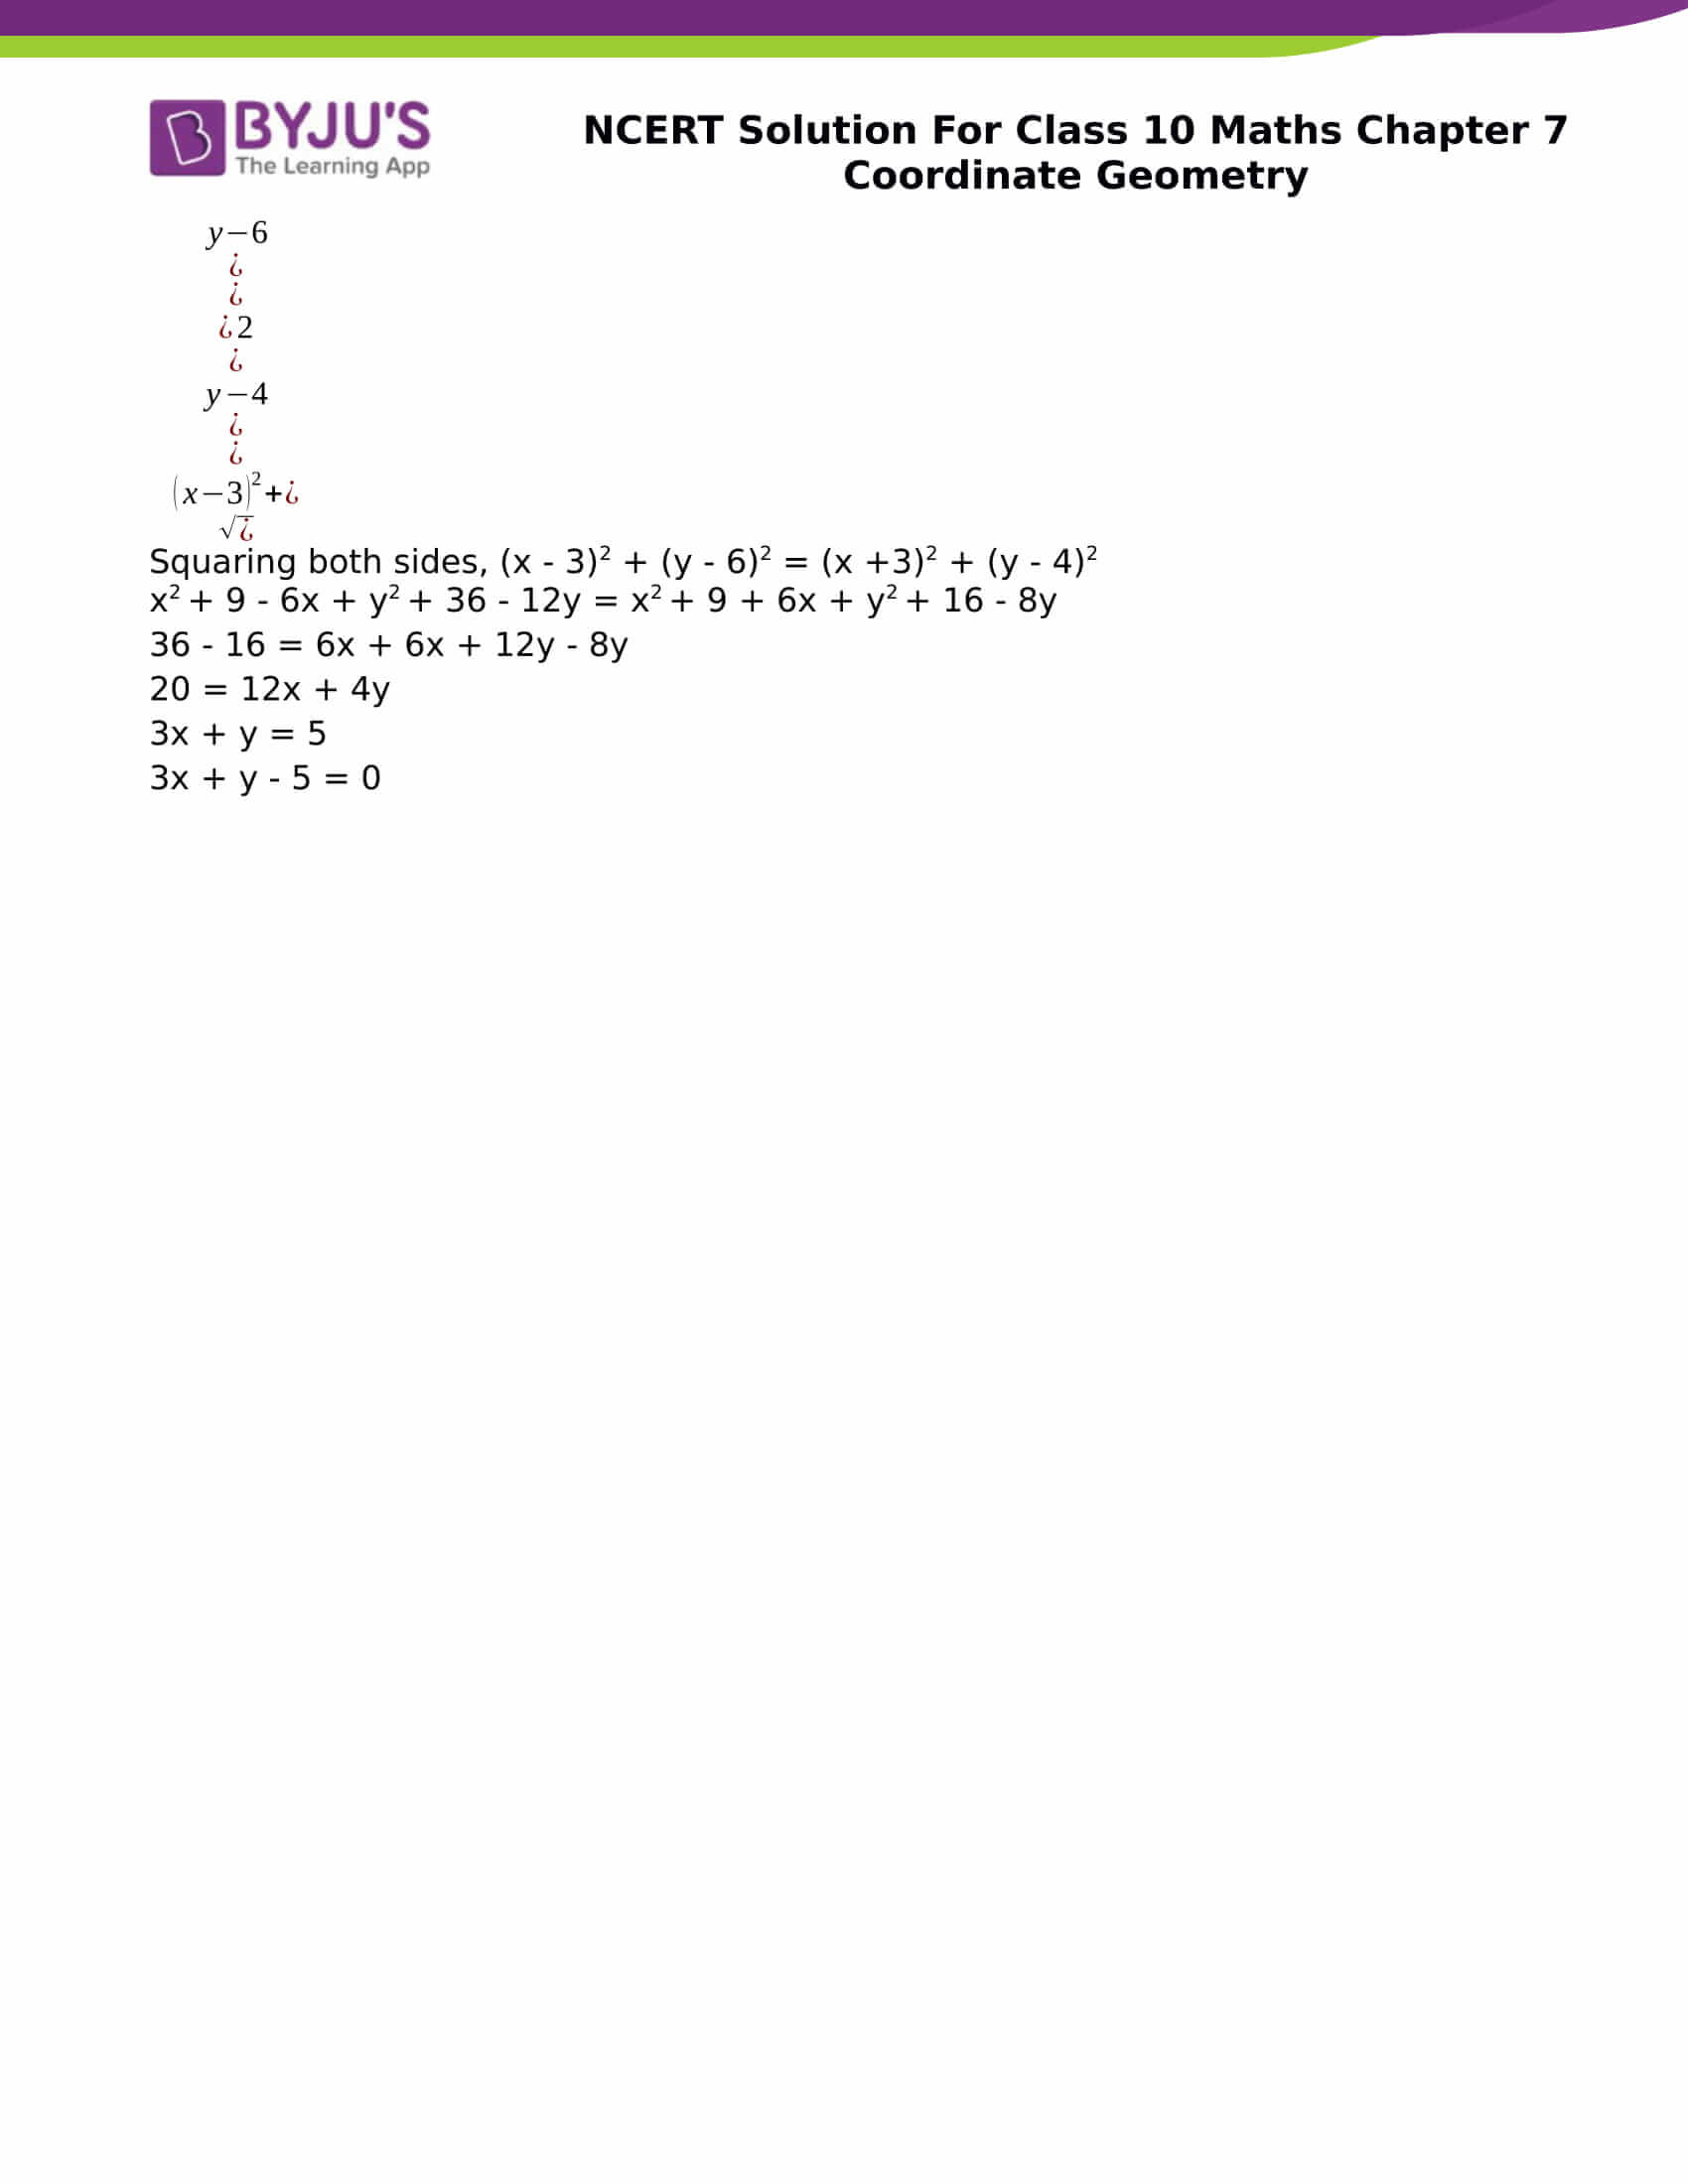 NCERT Solution for CBSE class 10 Maths chapter 7 Coordinate Geometry Excercise 7.1 Part 10